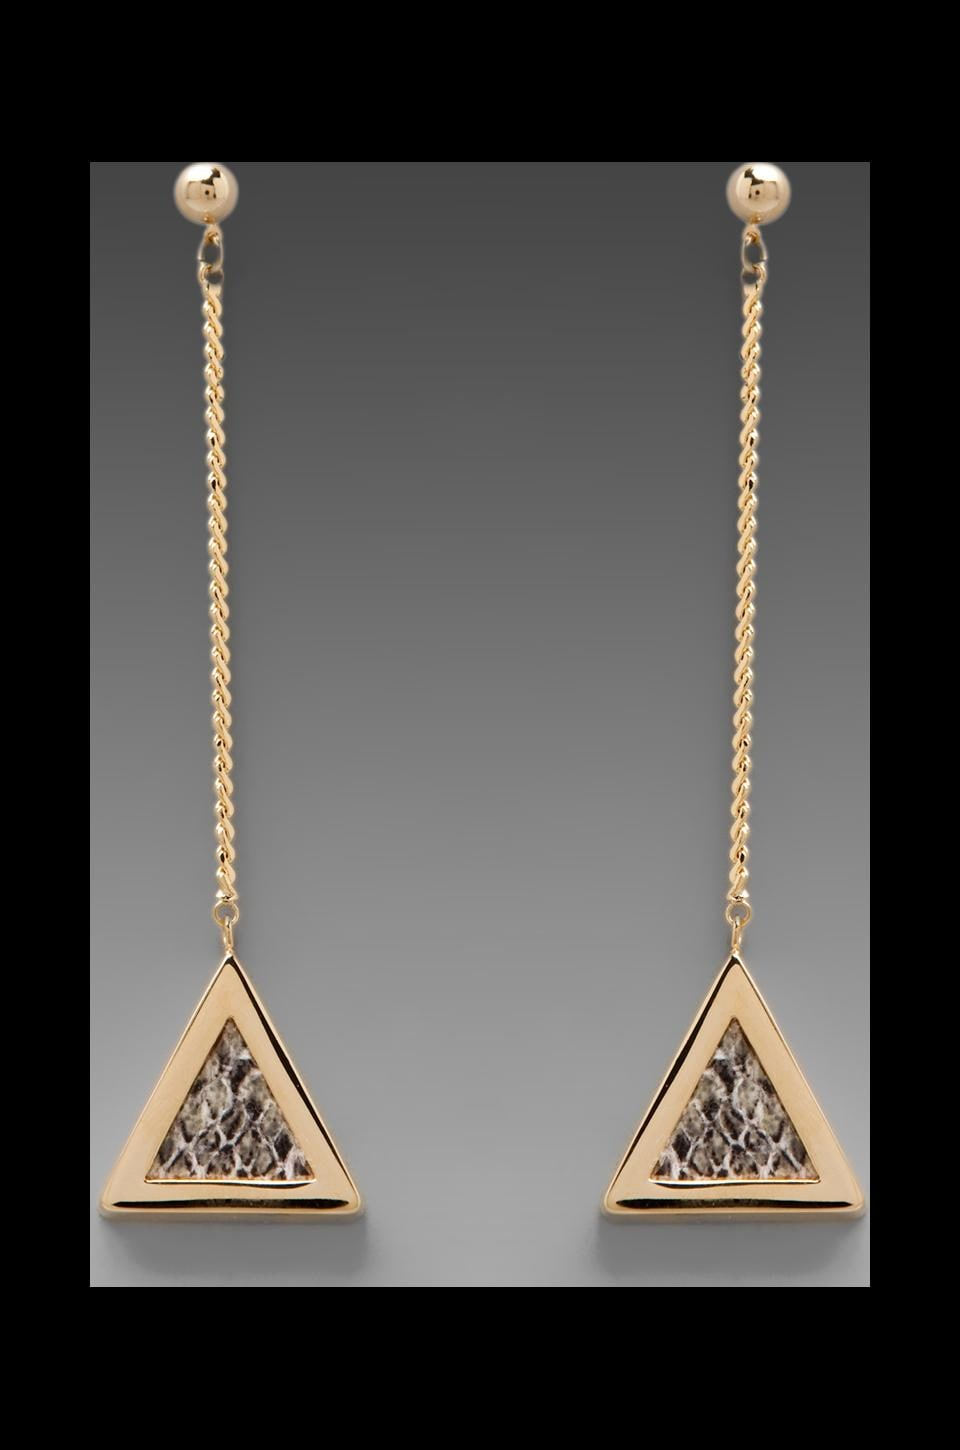 Roman Luxe Python Triangle Drop Chain Earrings in Gold